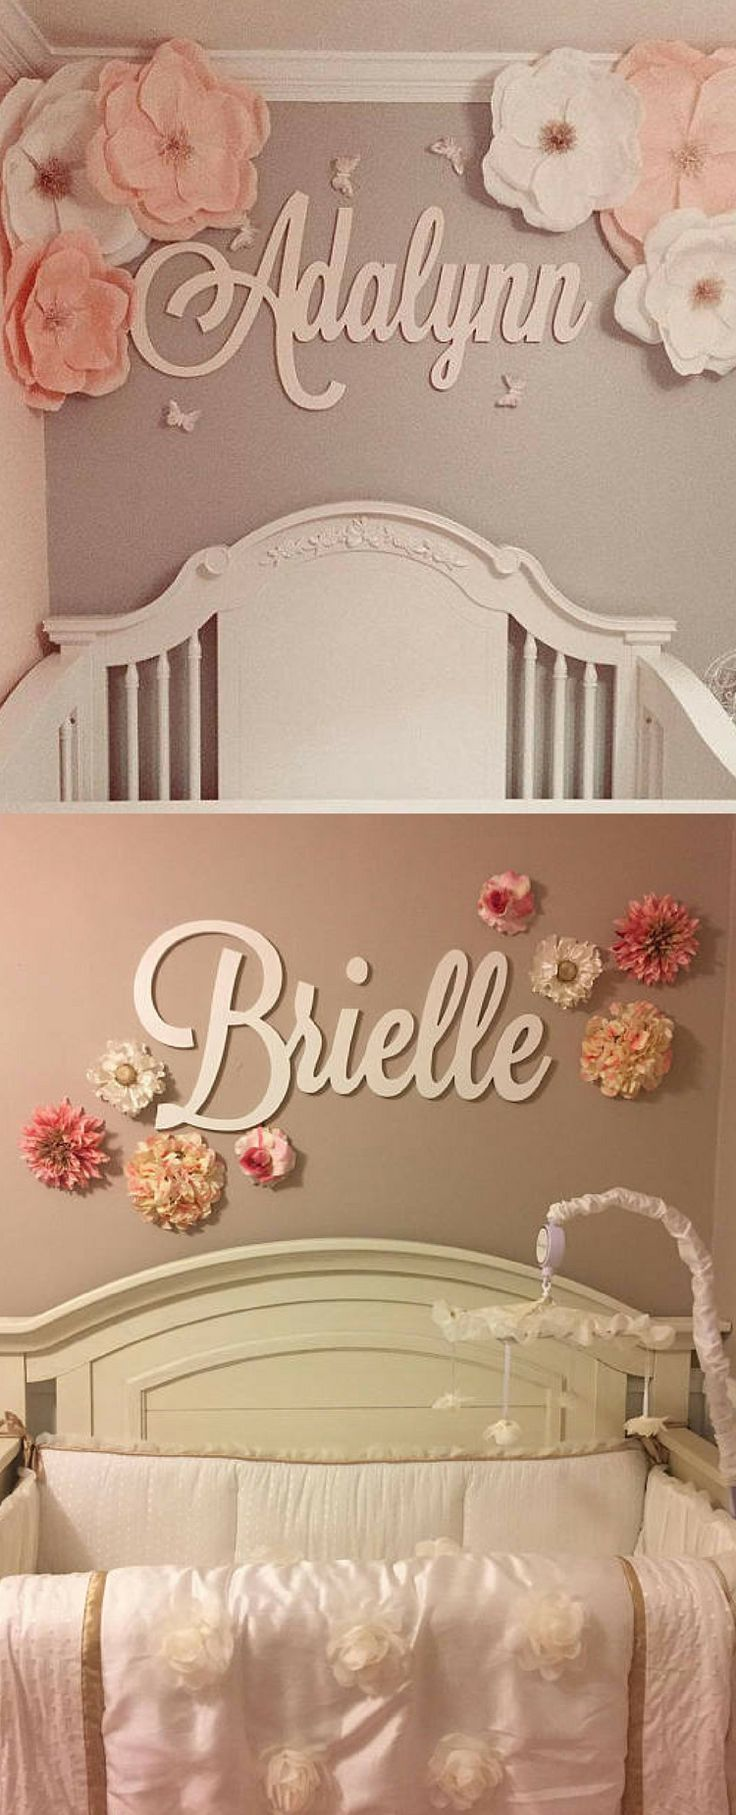 Cool cursive decal! This is a great idea for name décor for my baby girl's nursery ♡ Maybe I could DIY this wood sign… But this one is $14+! #ad